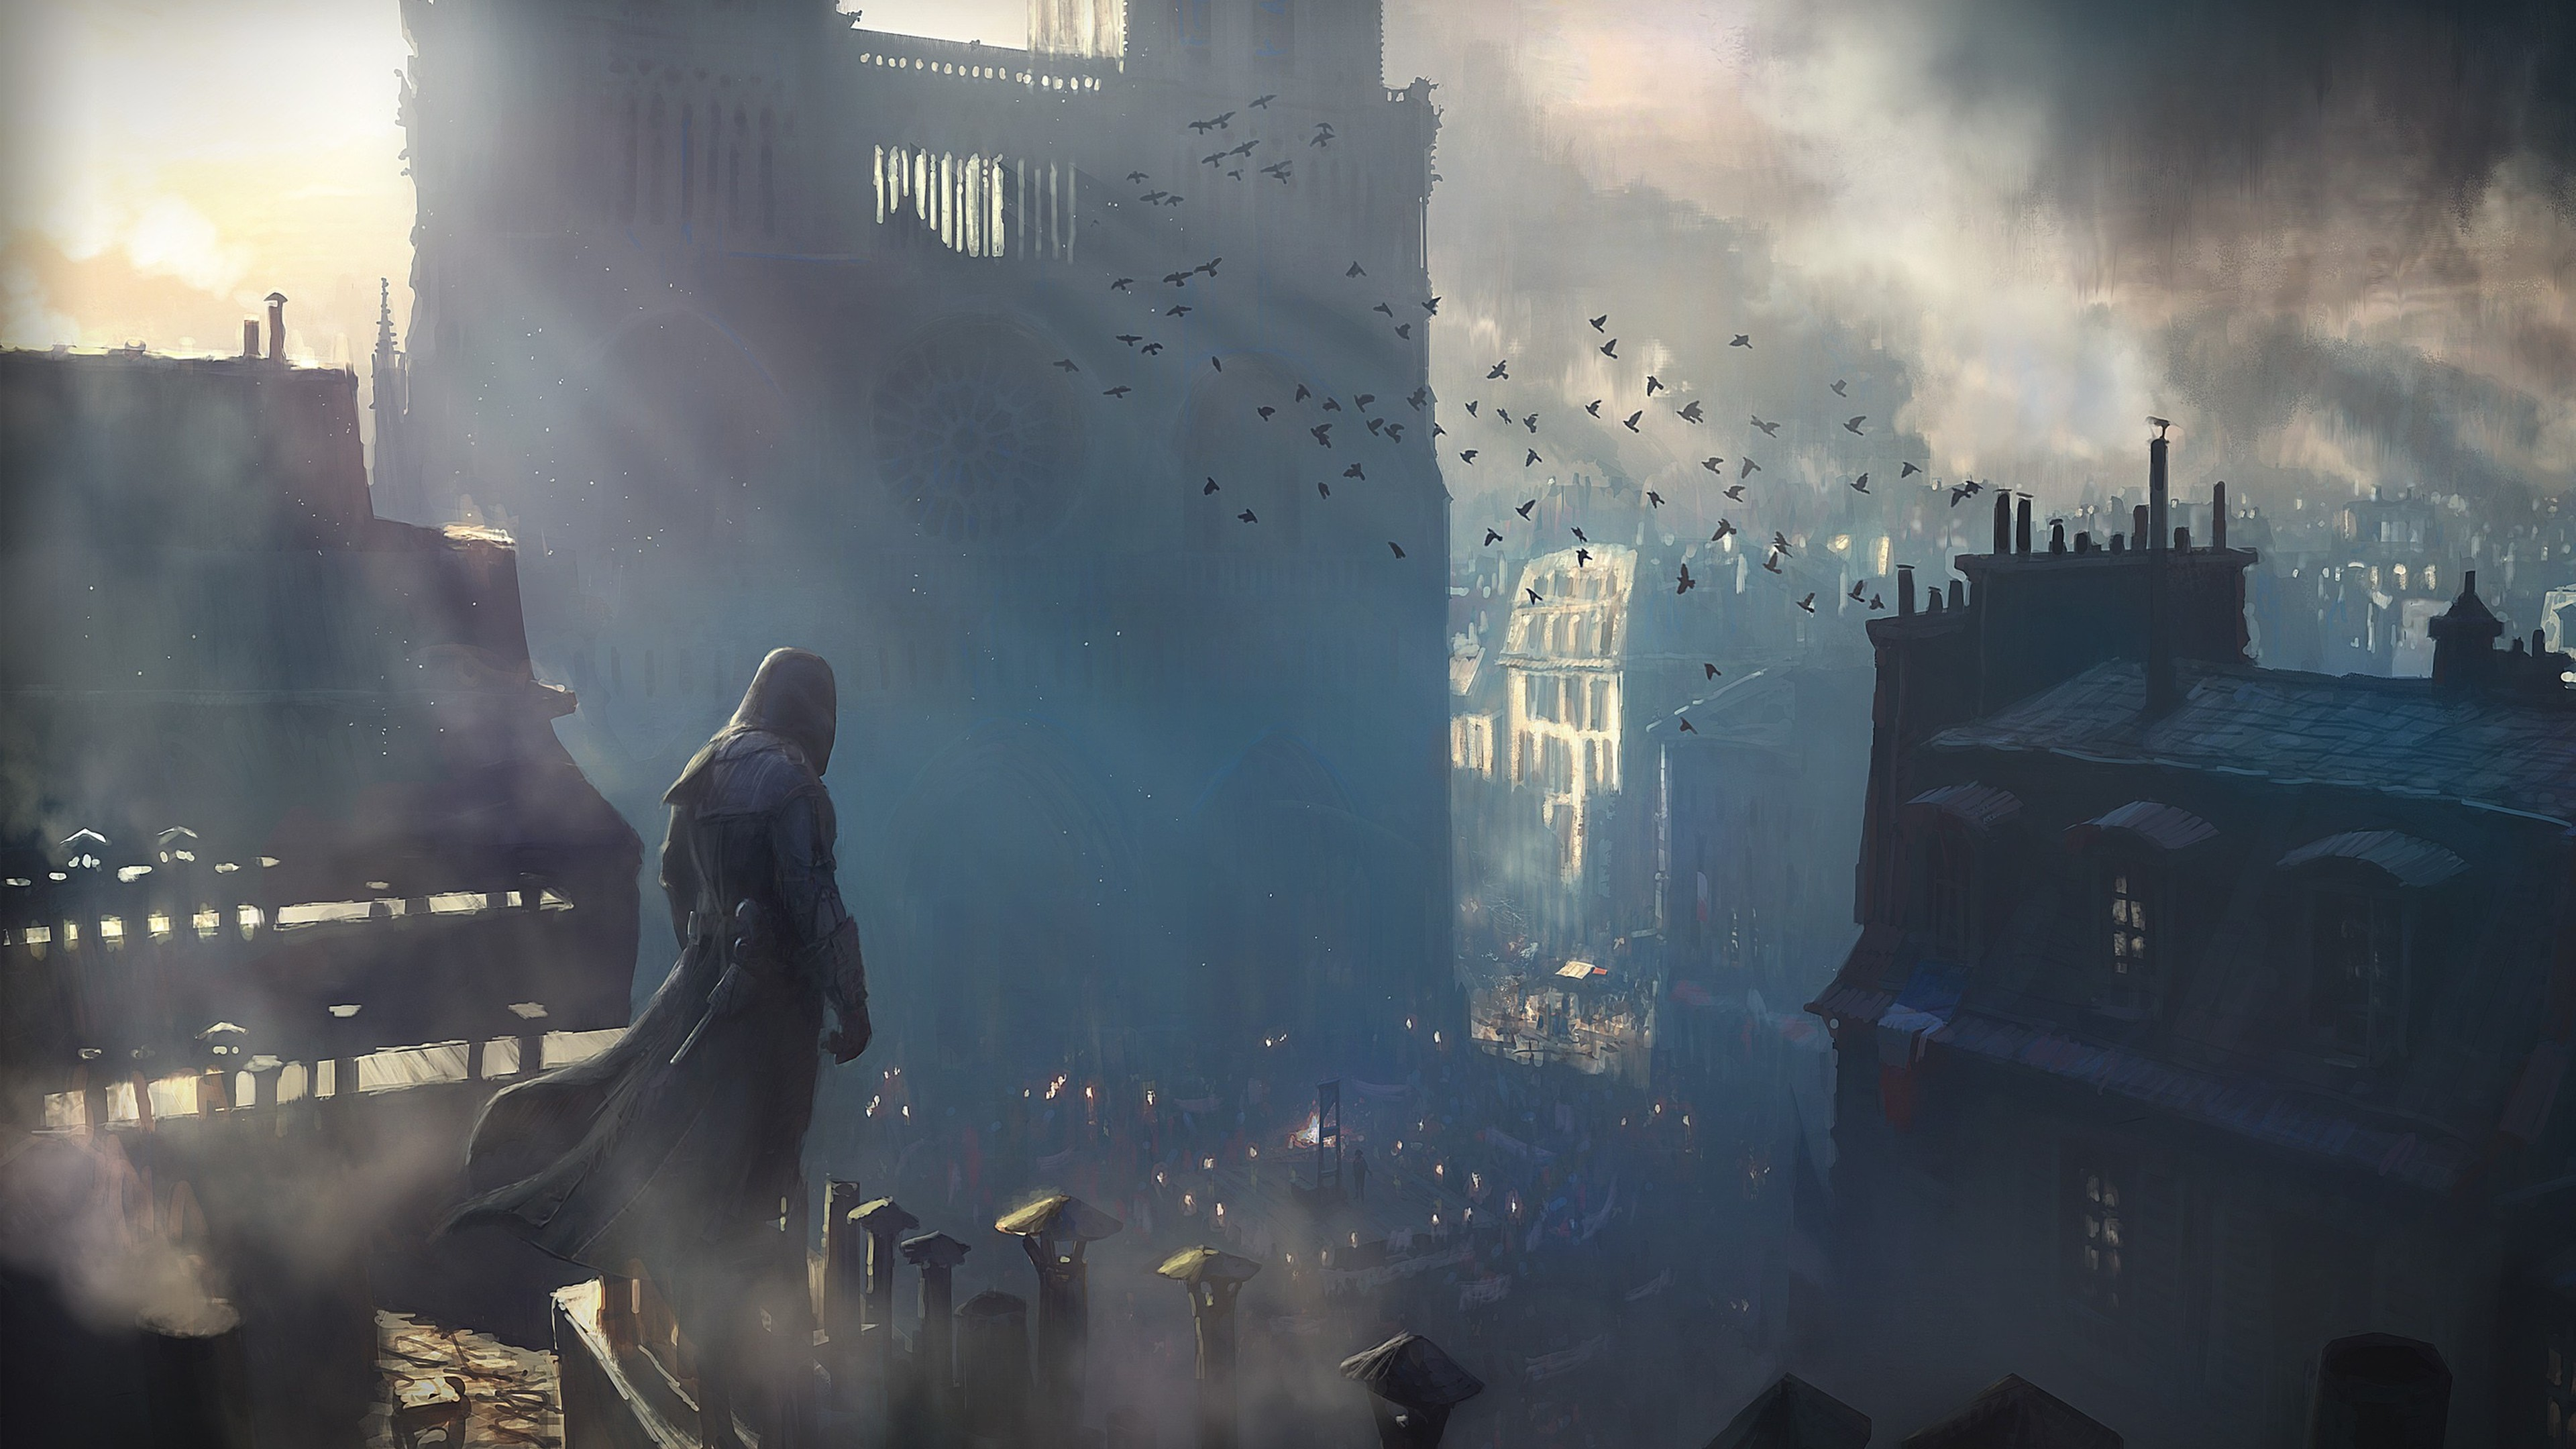 2048x1152 assassins creed unity game 2048x1152 resolution